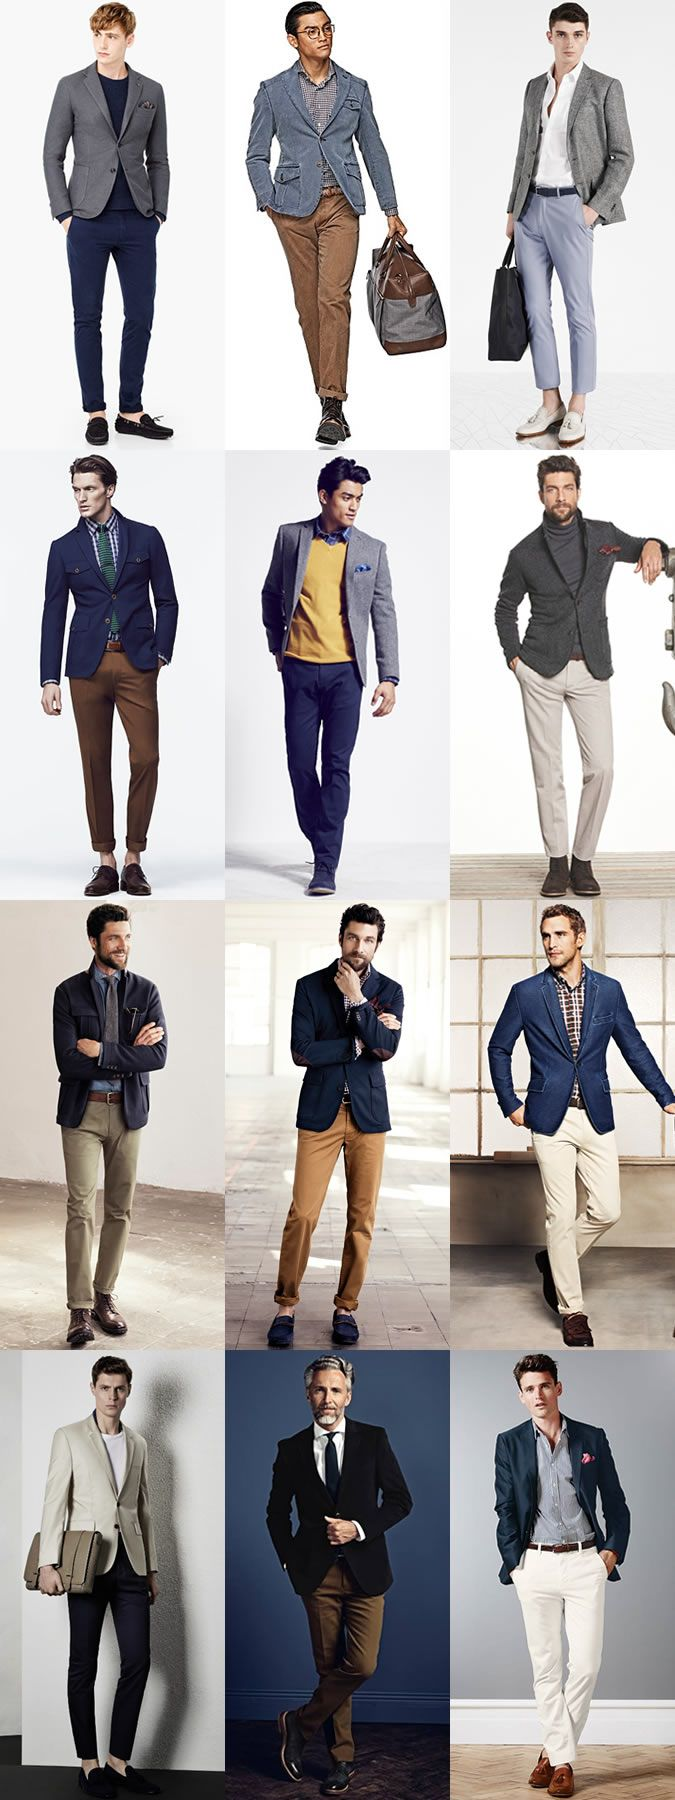 Dress code for smart casual smart casual dress code for men pictures - Men S Smart Casual Outfit Inspiration The Slim Fit Chinos